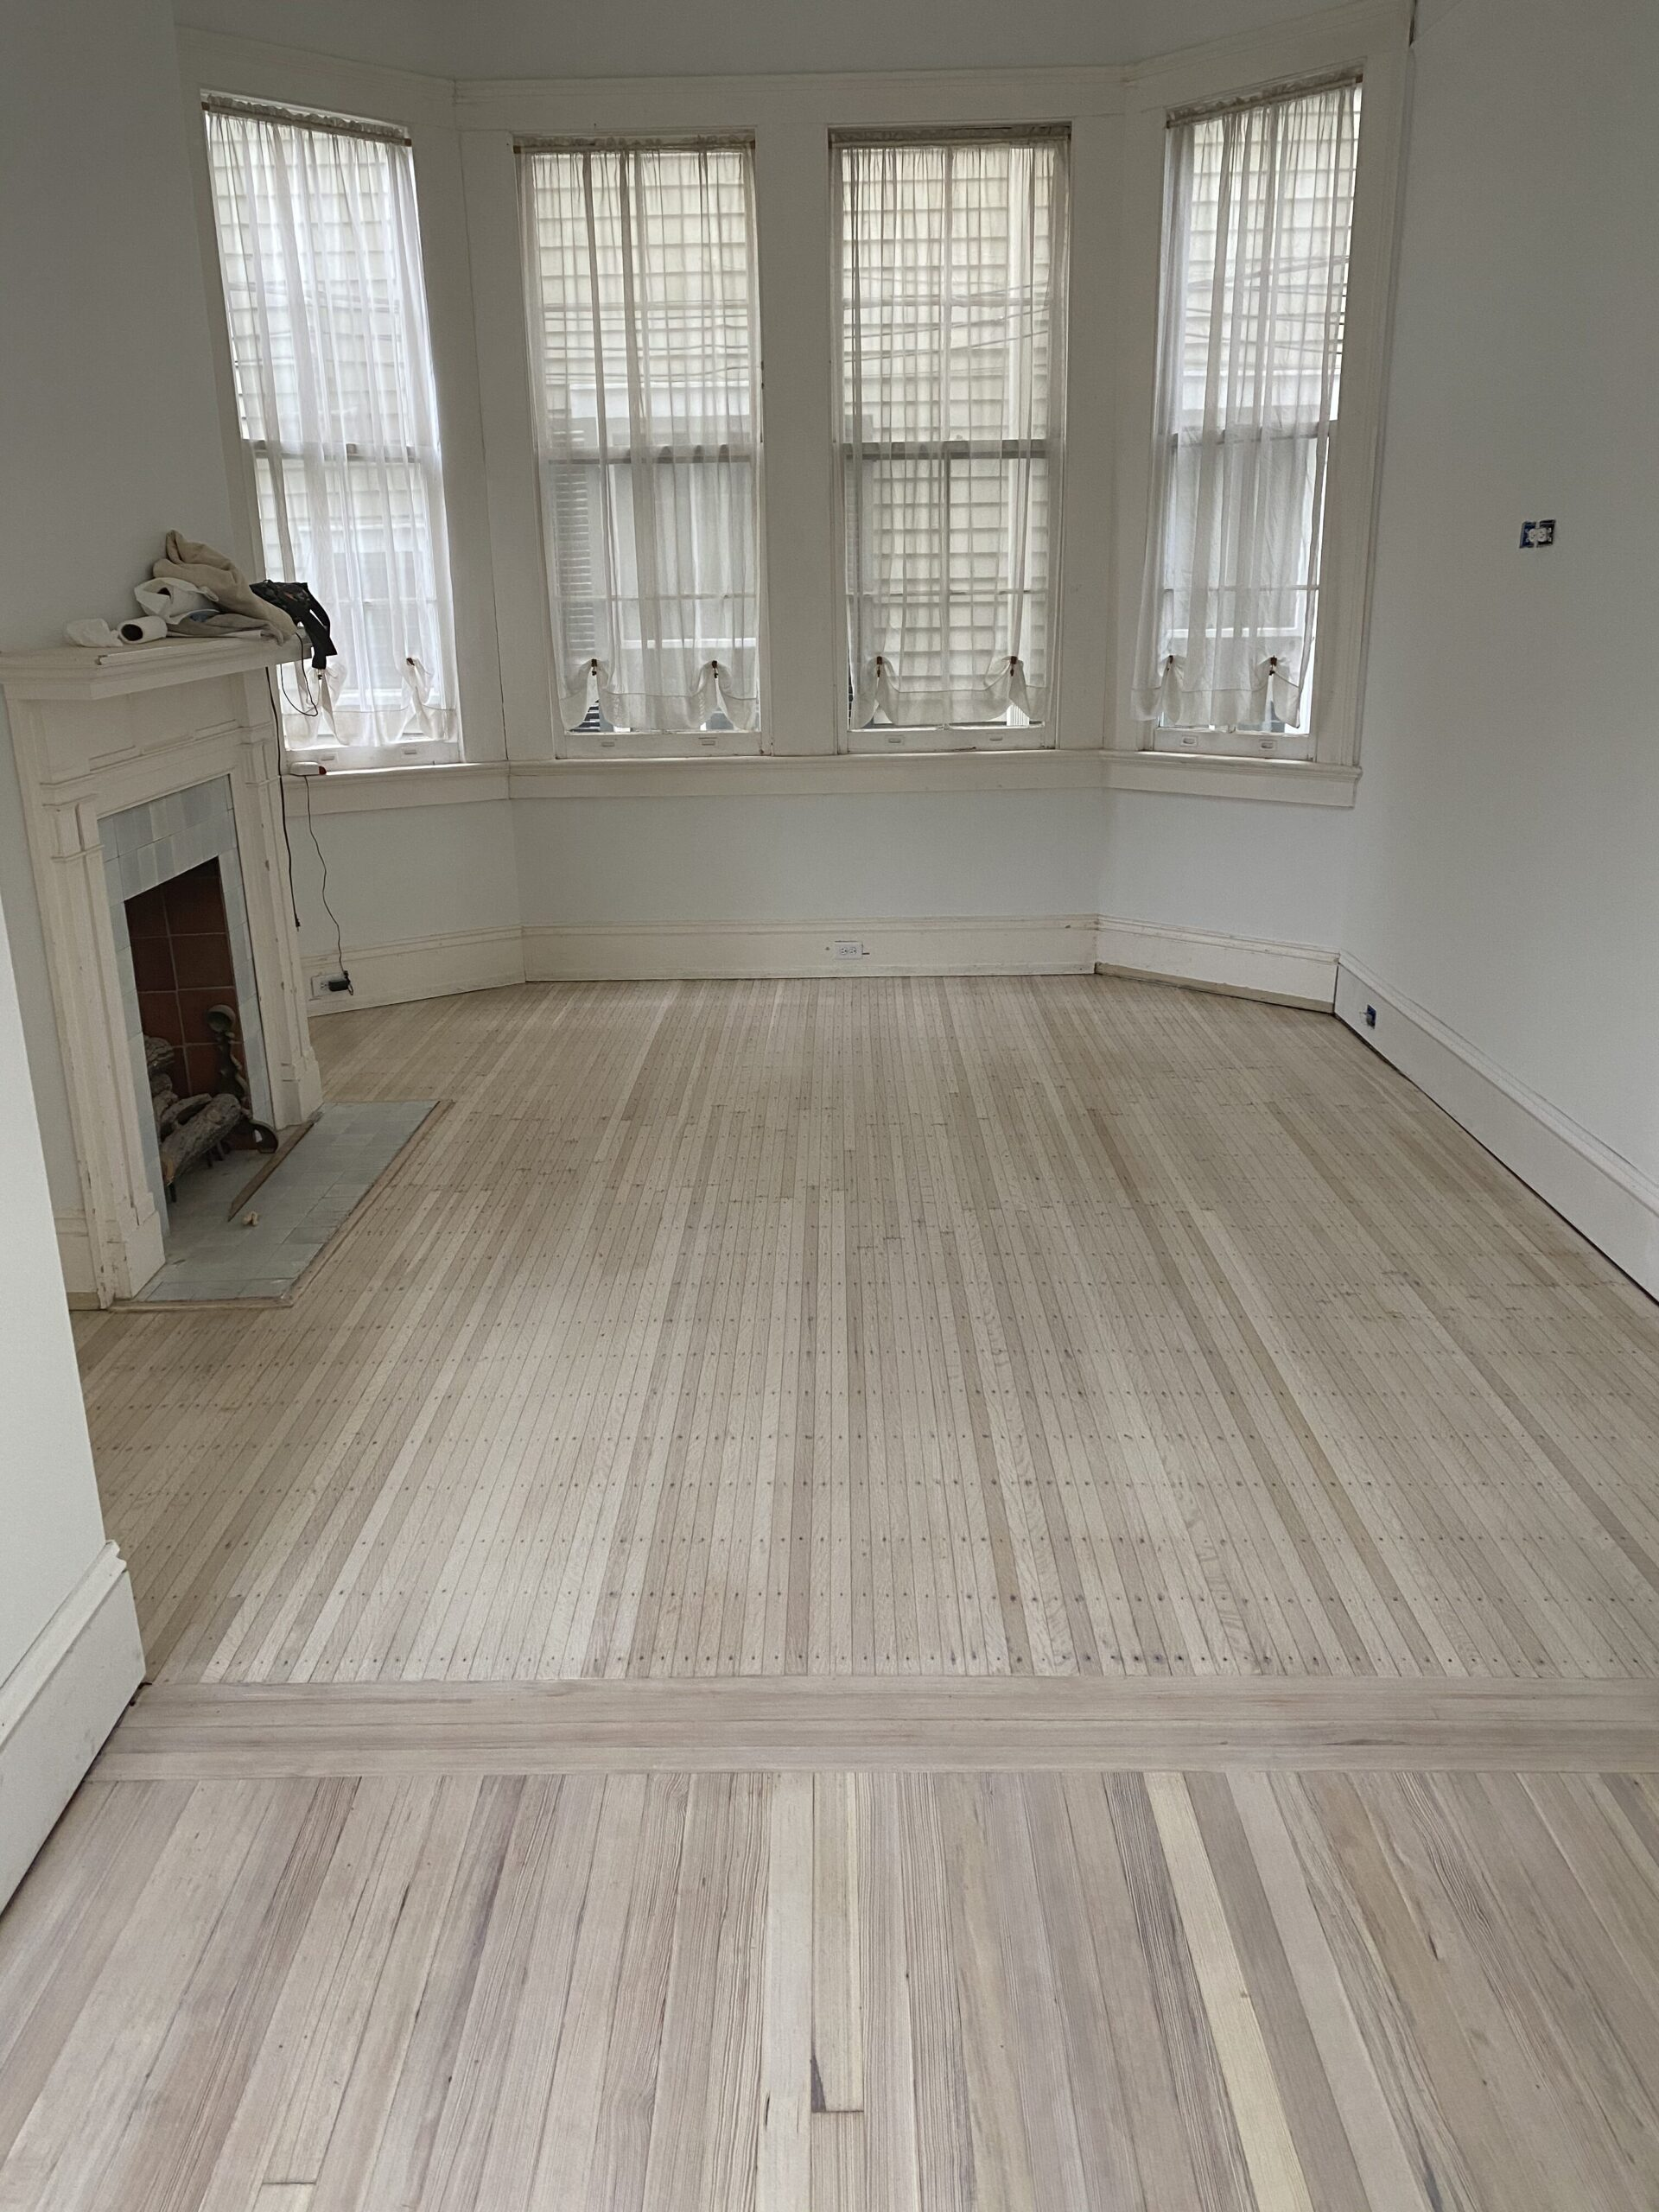 Bleached and white wash finished red oak and red heart of pine in a living room with a bay window and white fireplace. Oak wood is nailed down and visible, called Philidelphia strips.